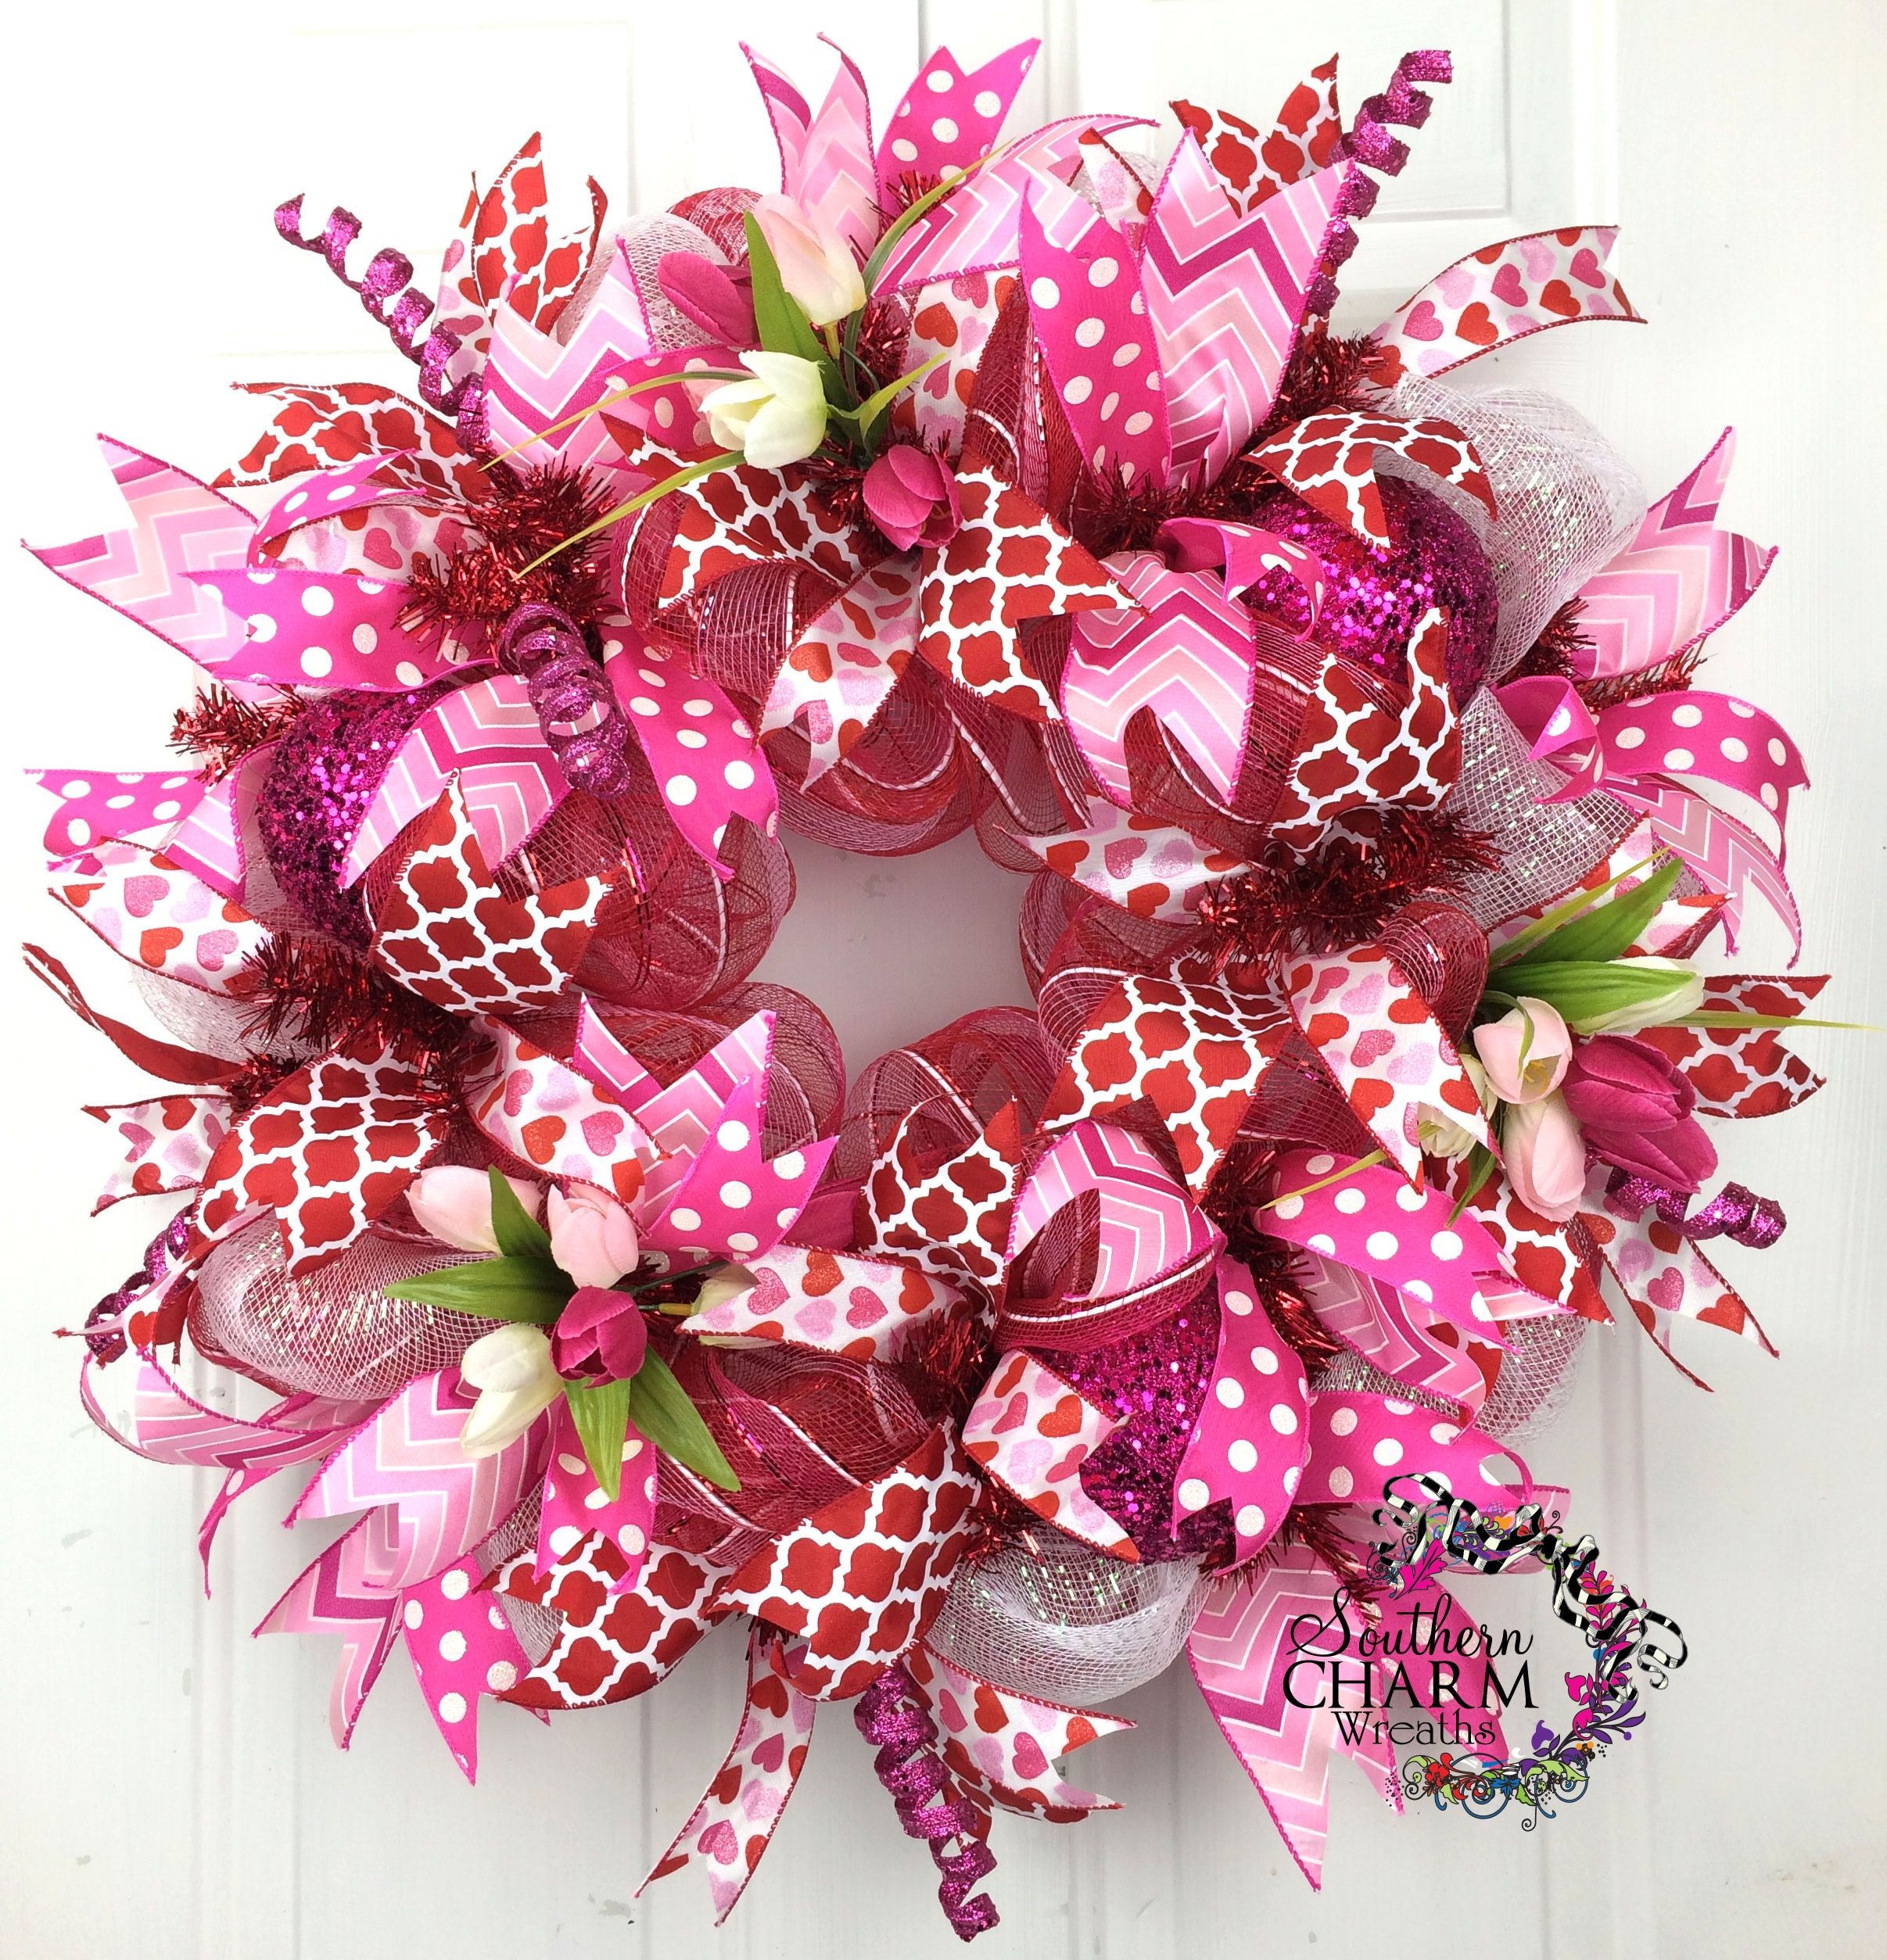 Deco Mesh Valentines Wreath In Hot Pink And Red With Tulips Door